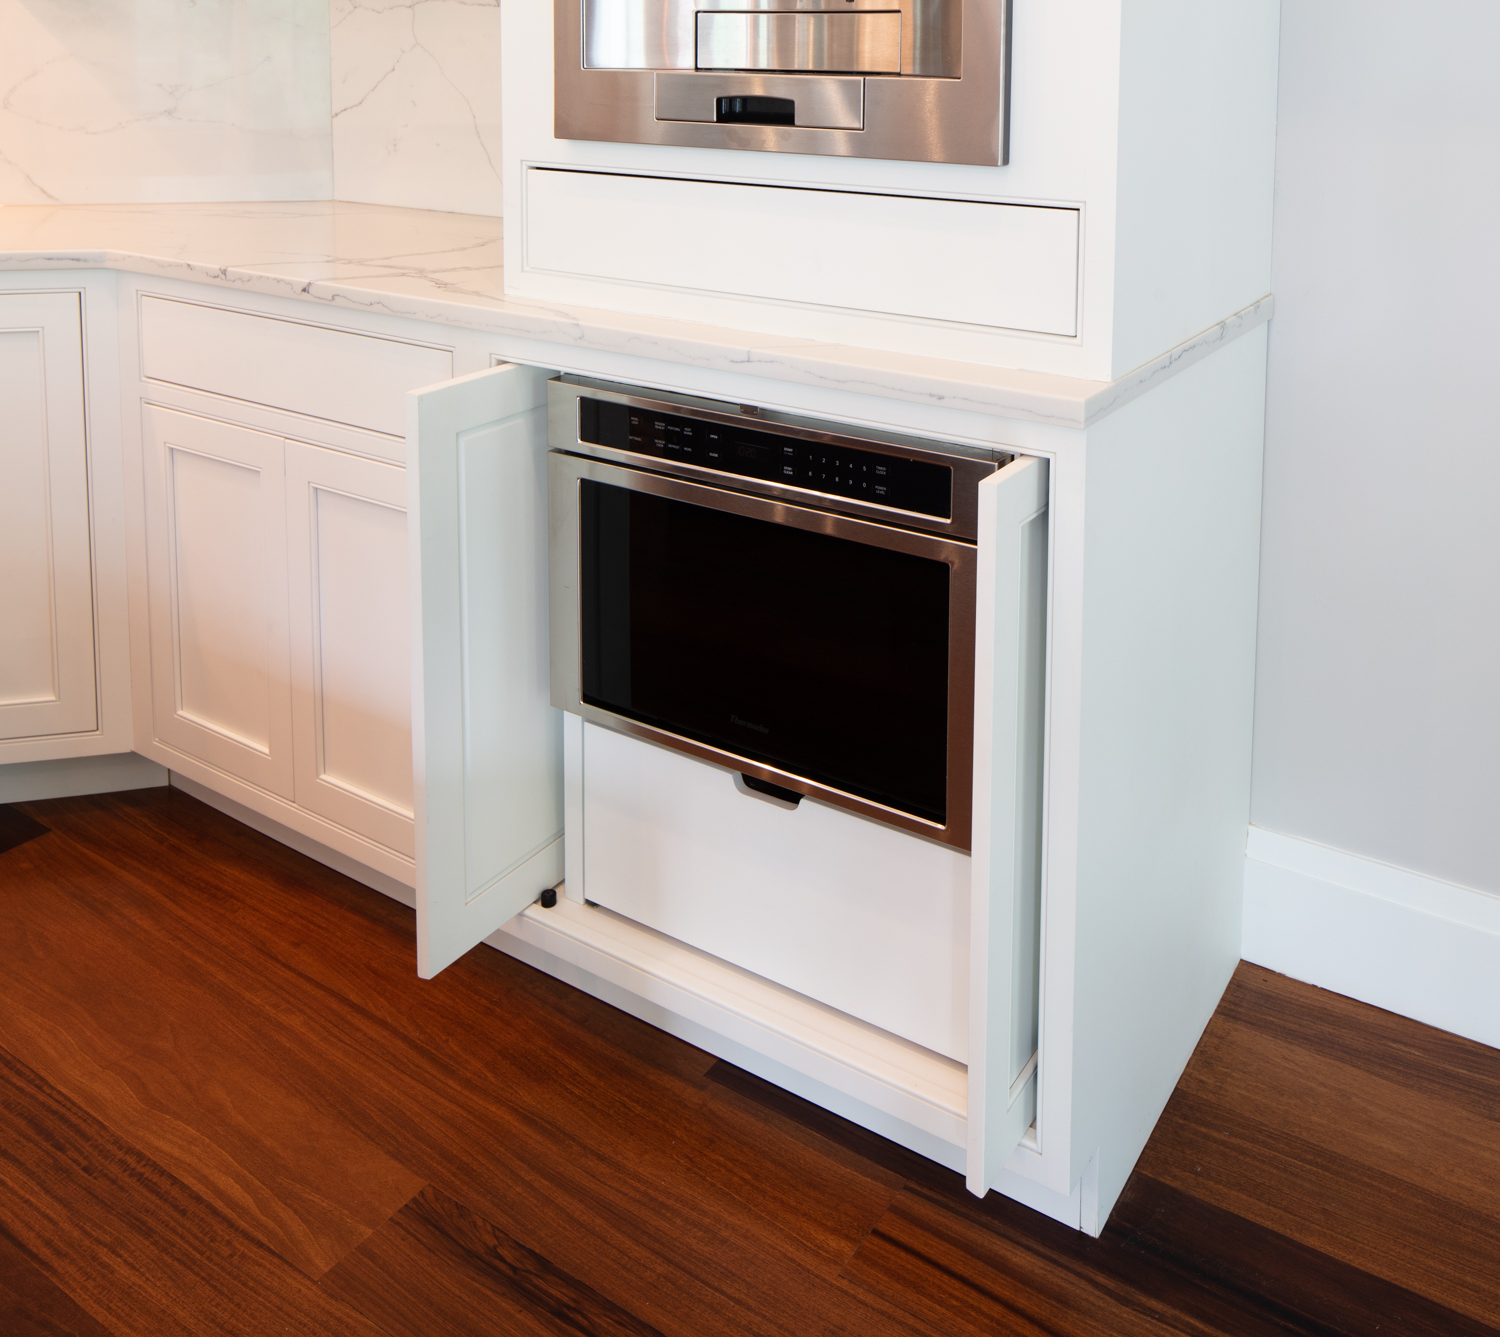 Built-in Microwave Cabinet with Pocket Doors